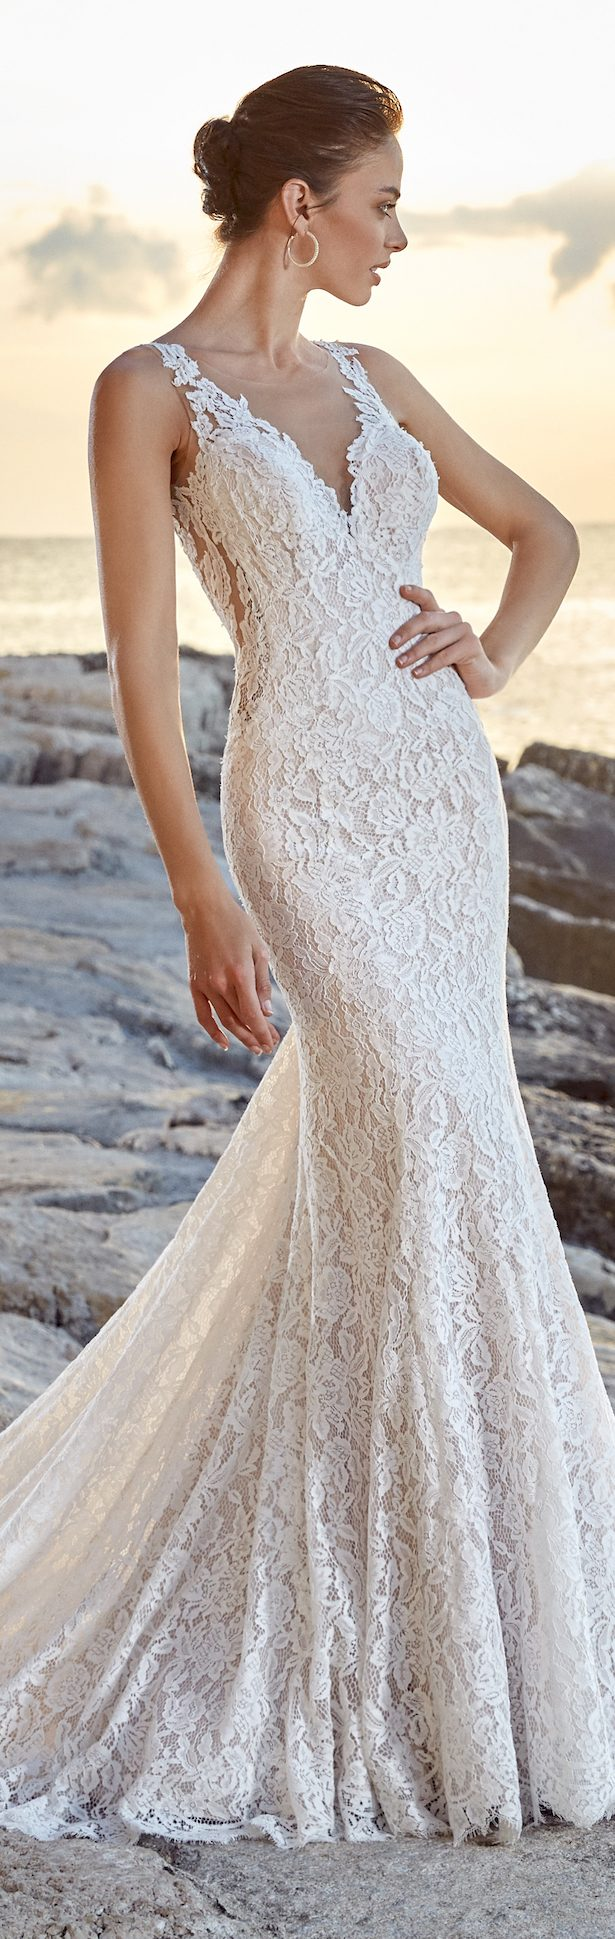 Eddy k dreams wedding dress collection 2018 belle the for Eddy k 2017 wedding dresses